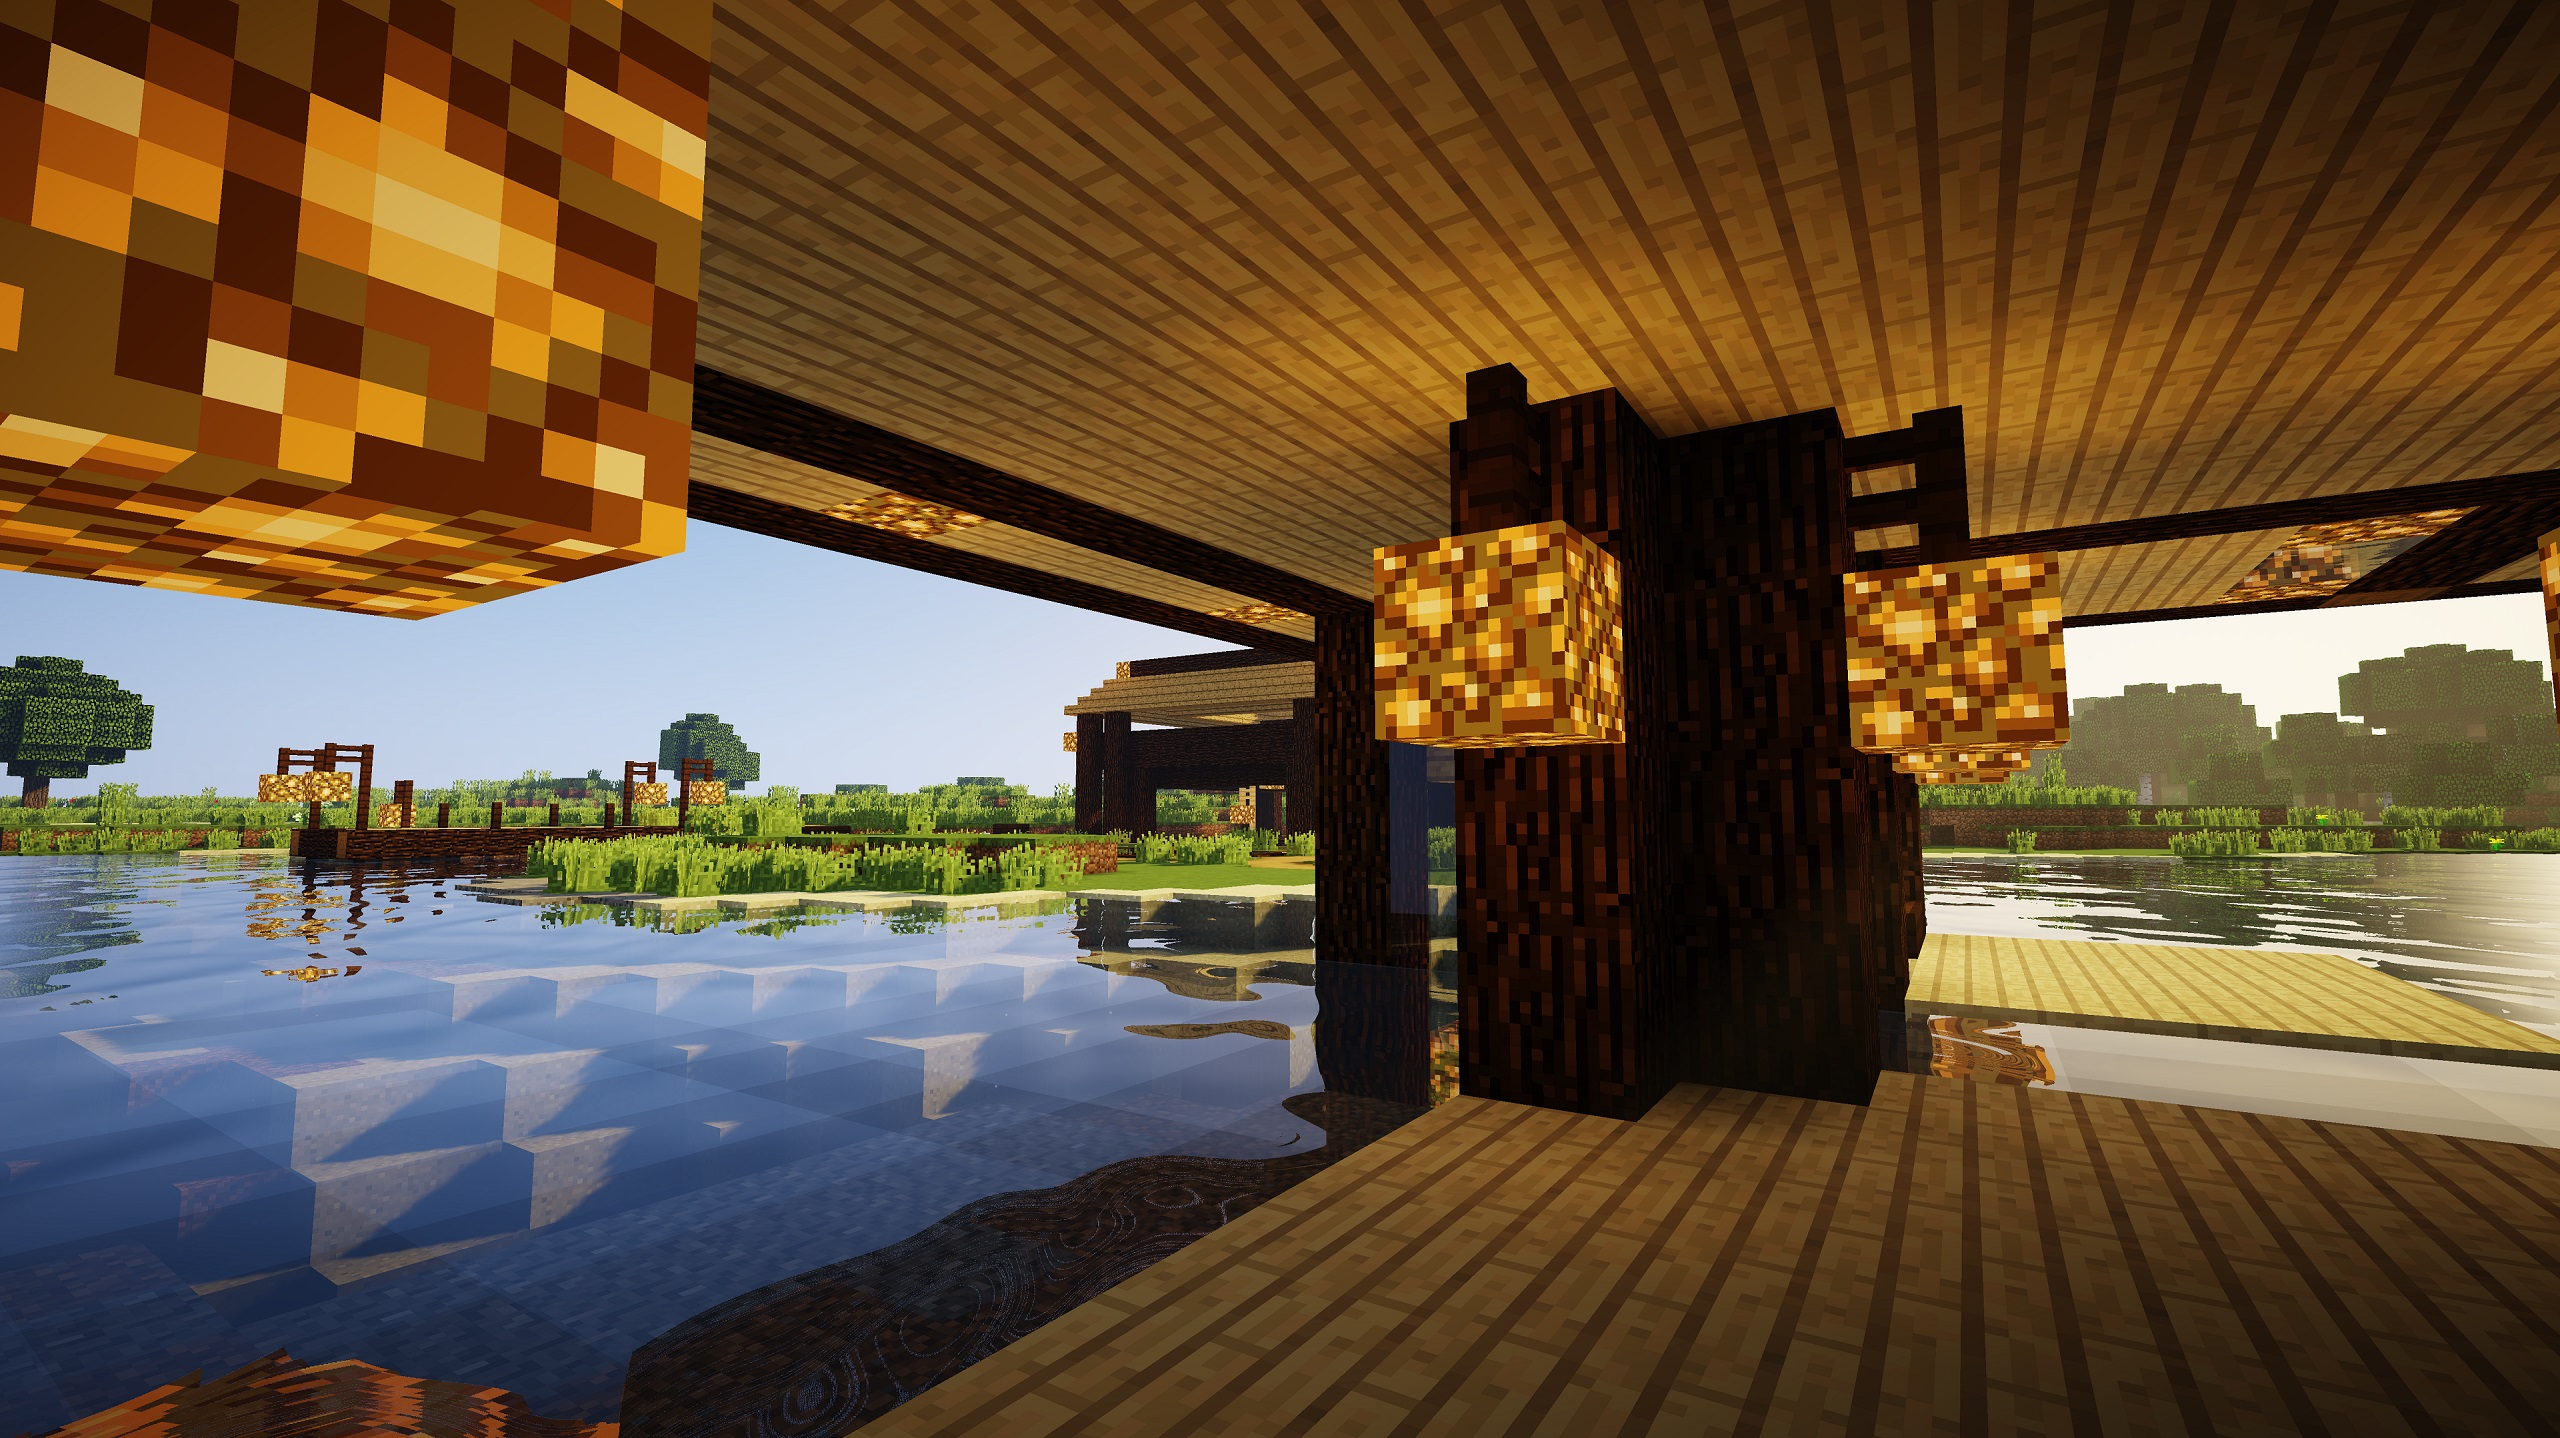 minecraft daylight riverside wood house 63241